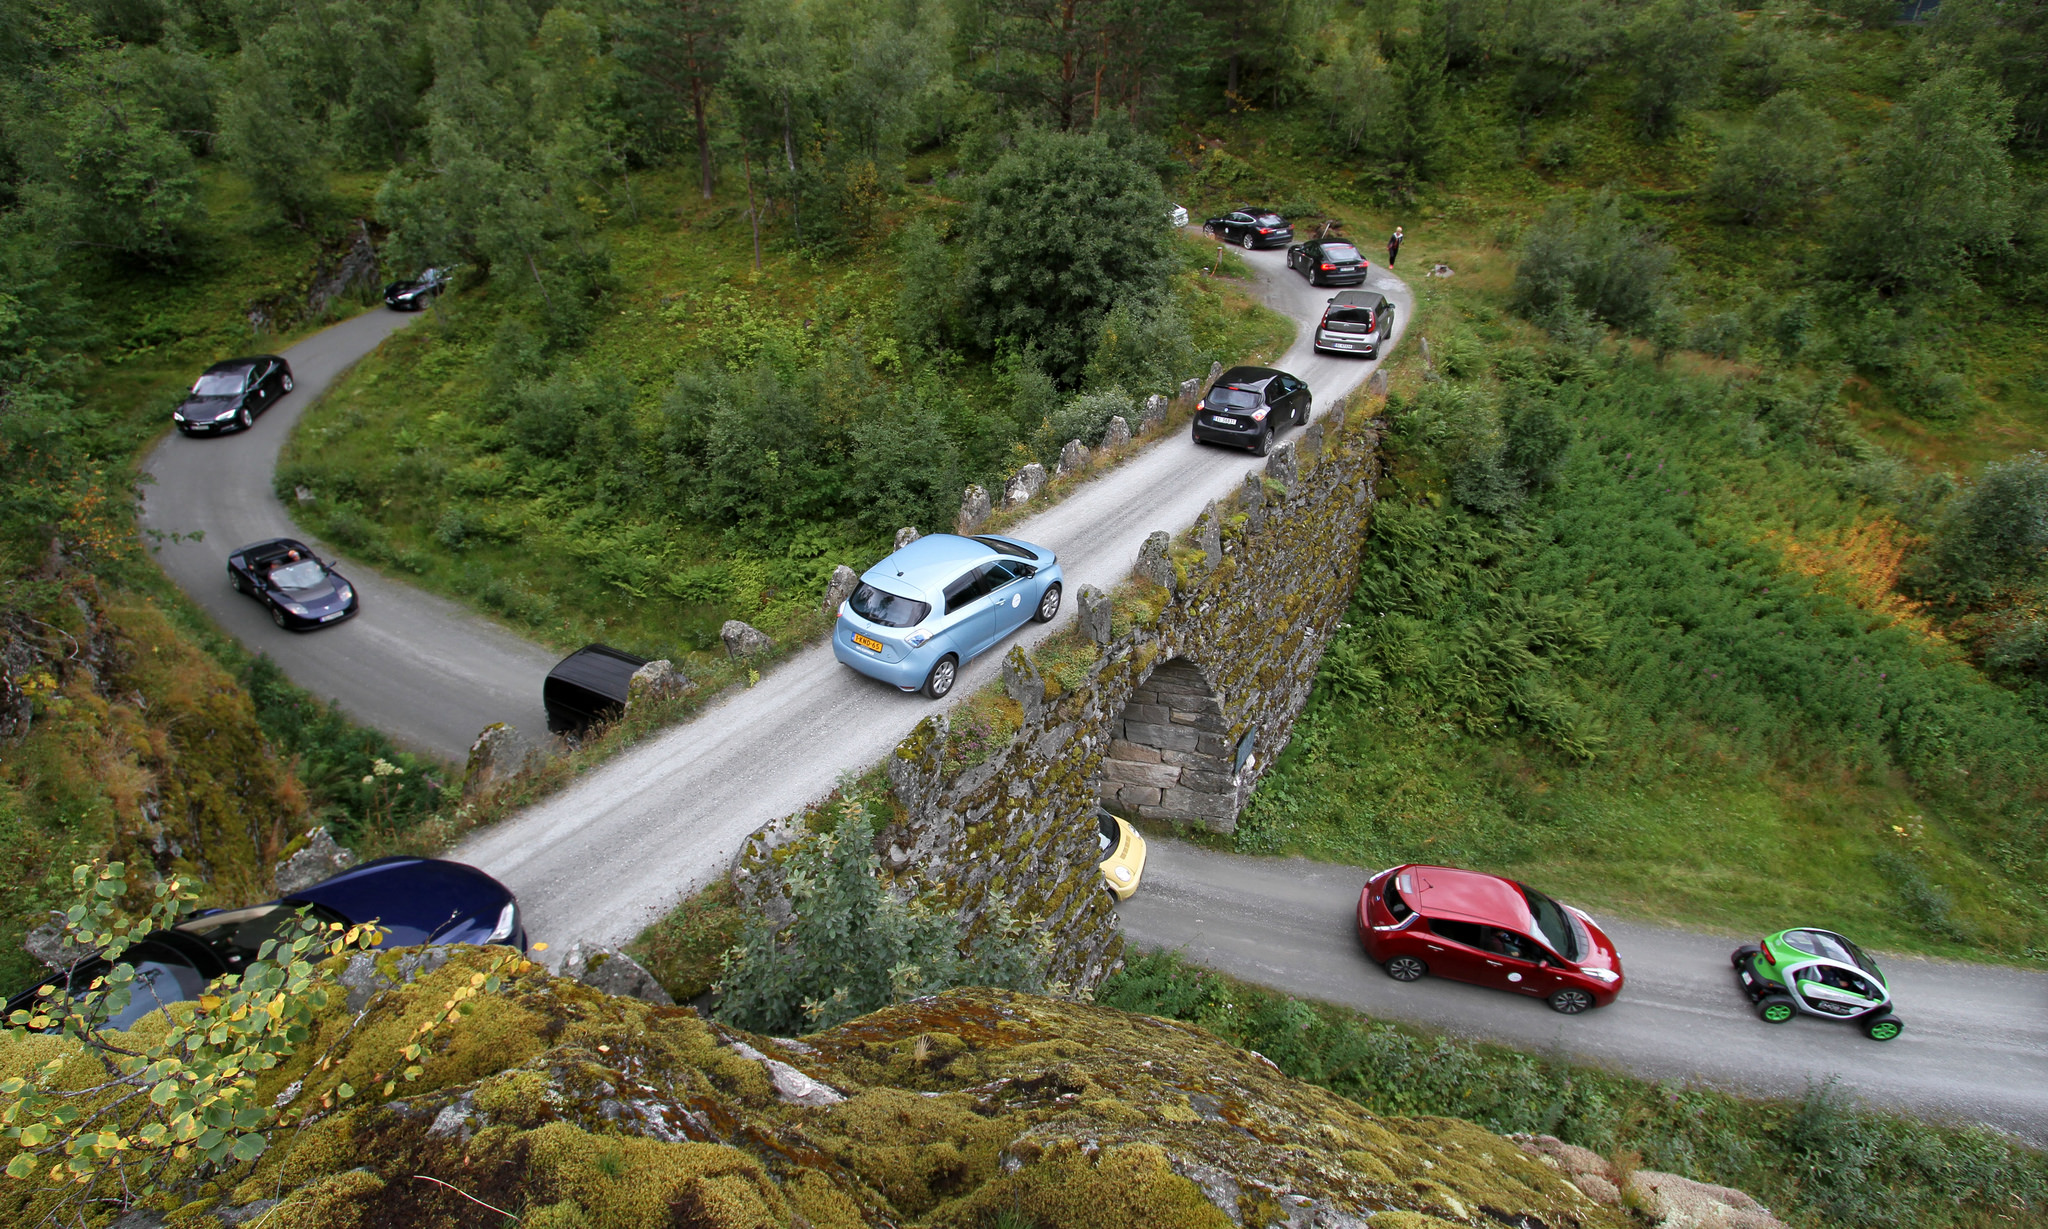 Norway May Ban All Gas Amp Diesel Cars Starting In 2025